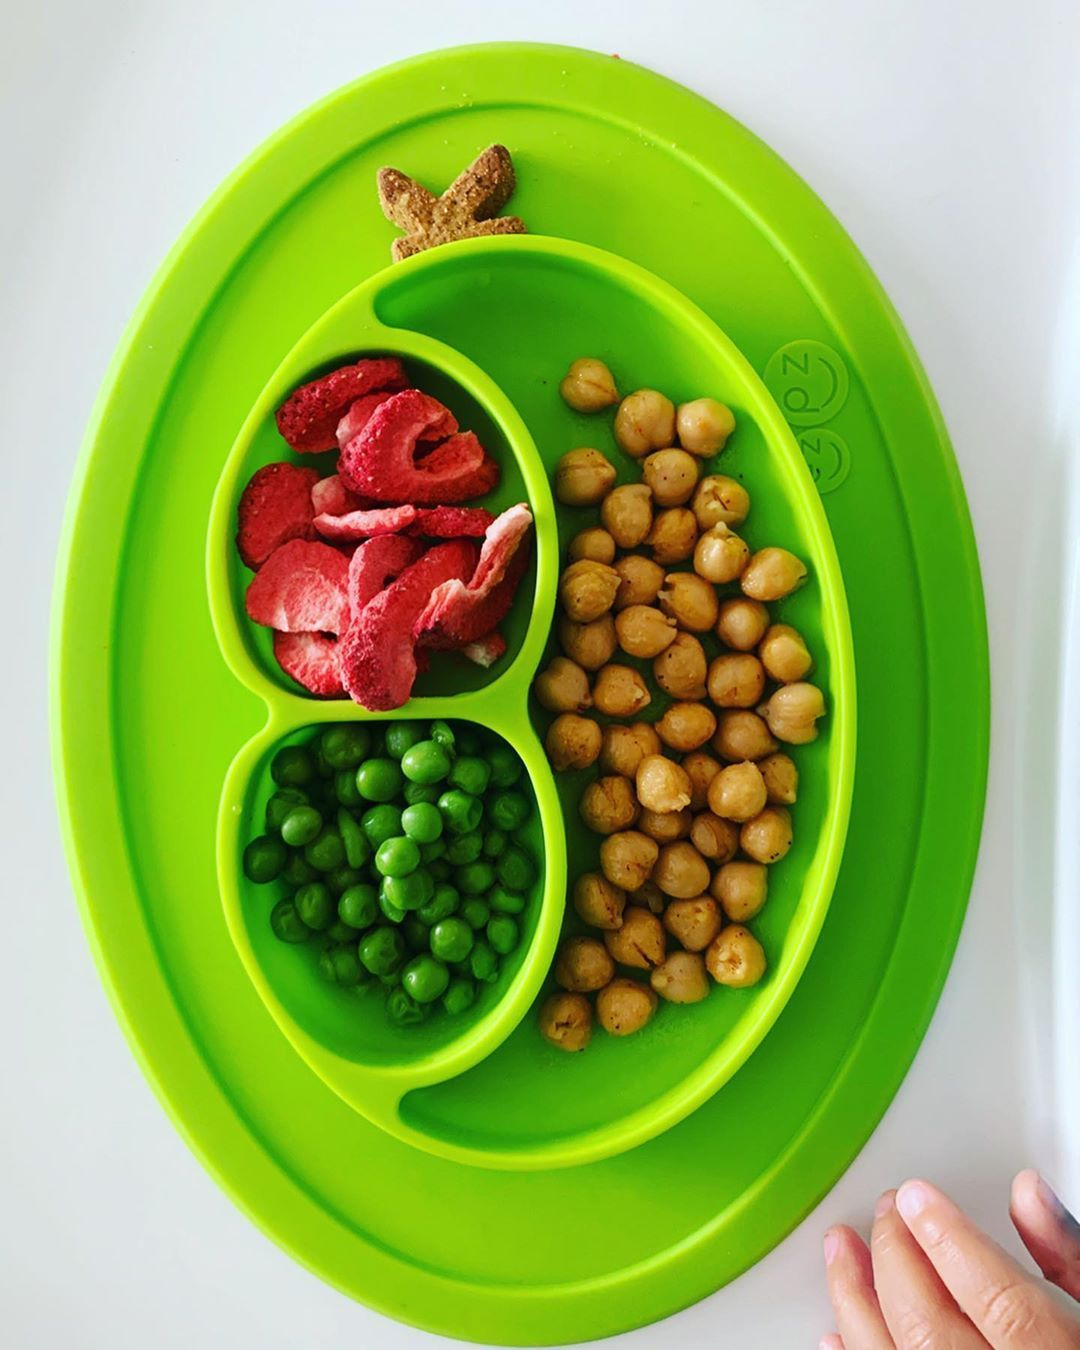 Roasted Chickpeas Freeze Dried Strawberries Green Peas Sweet Potato Cinnamon Alphabet Cookie (@bitsysbrainfood) ... #freezedriedstrawberries Roasted Chickpeas Freeze Dried Strawberries Green Peas Sweet Potato Cinnamon Alphabet Cookie (@bitsysbrainfood) ... #freezedriedstrawberries